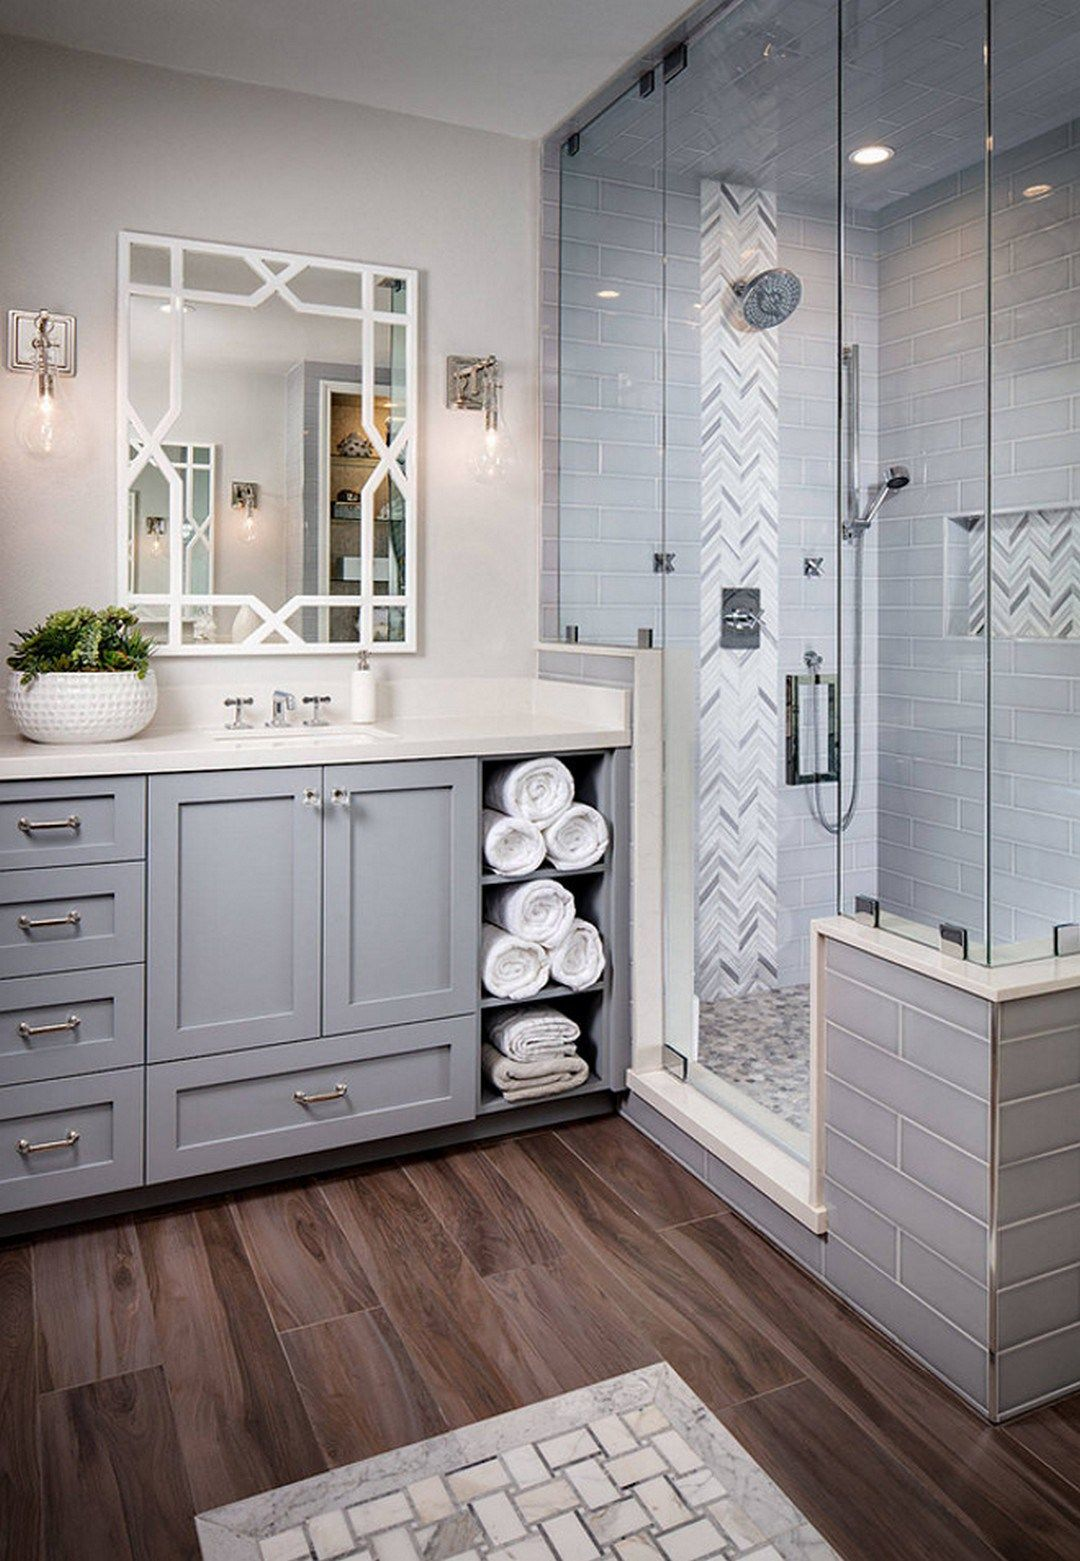 99 Beautiful Urban Farmhouse Master Bathroom Remodel (26